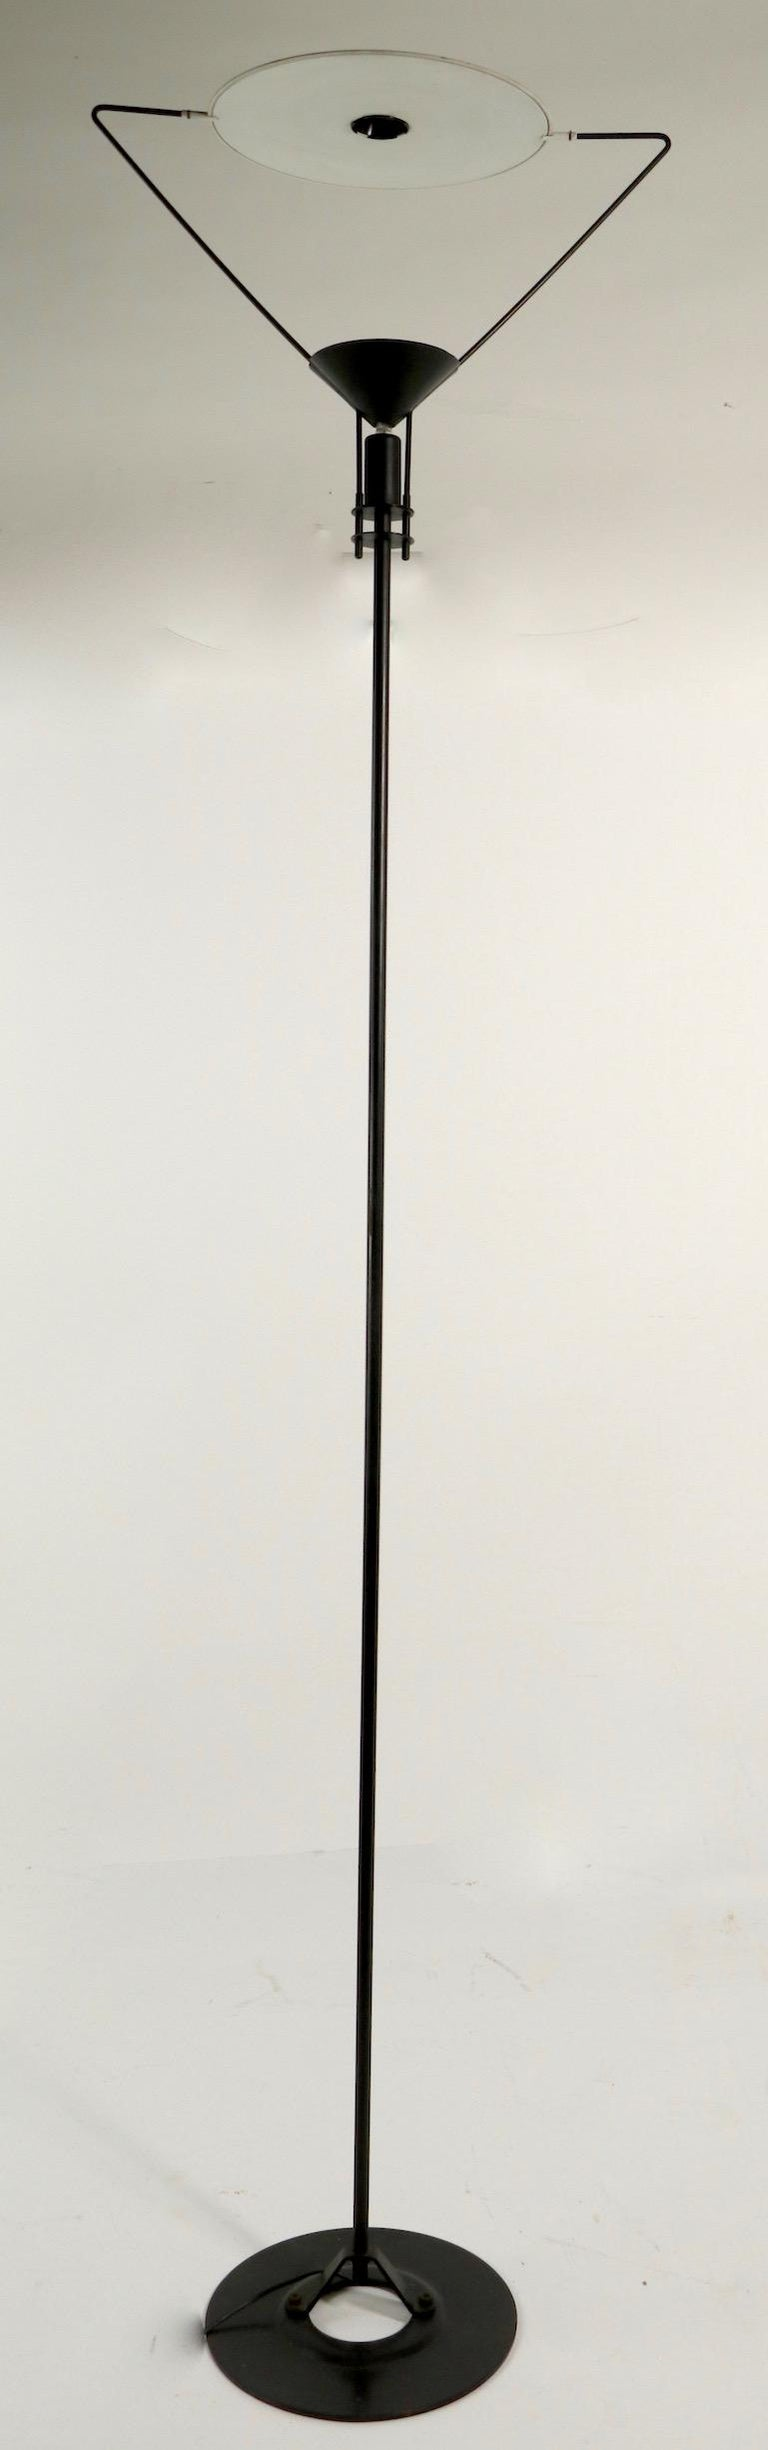 American Polifemo Floor Lamp by Carlo Forcolini for Artemide For Sale